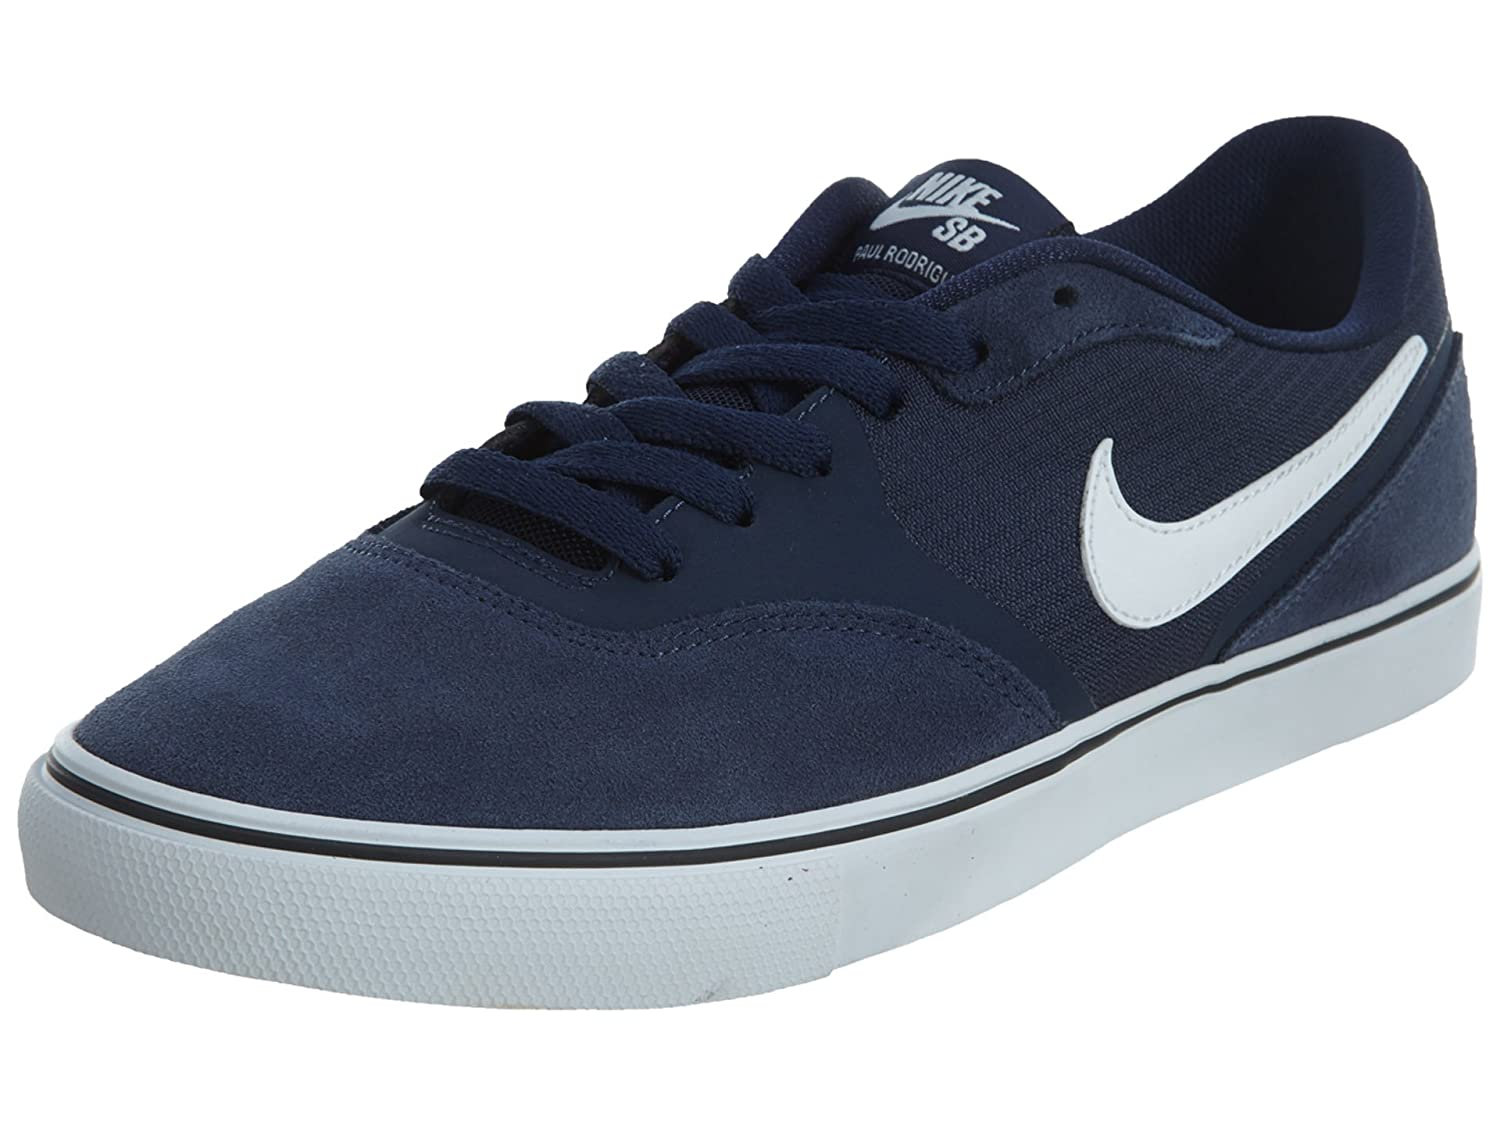 61d051b3d248 Nike Paul Rodriguez 9 Vr Mens Style  819844-410 Size  9. 5  Buy Online at  Low Prices in India - Amazon.in